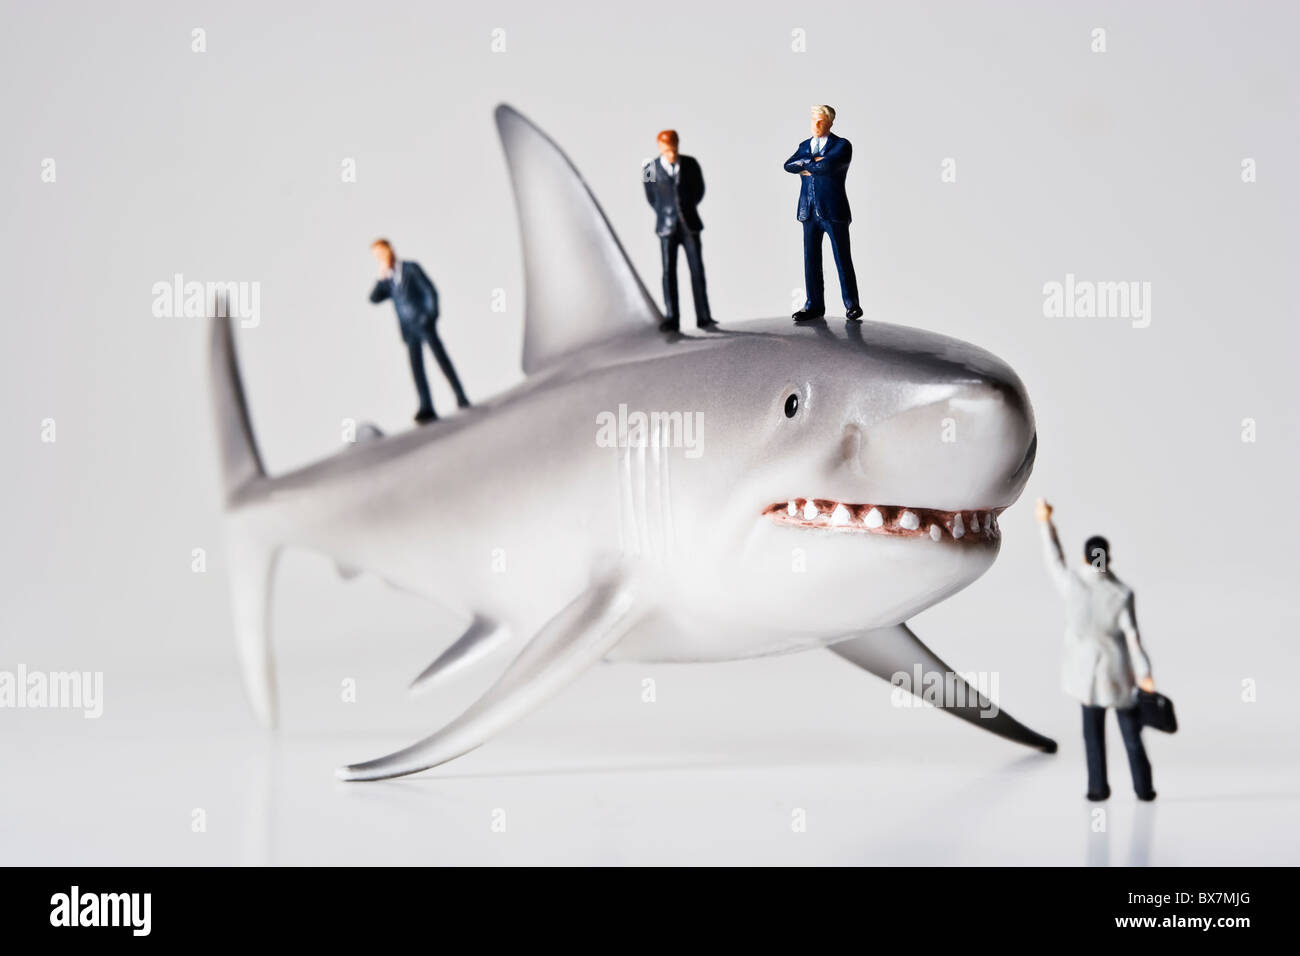 Figurines d'affaires placées avec une figurine de requins. Photo Stock